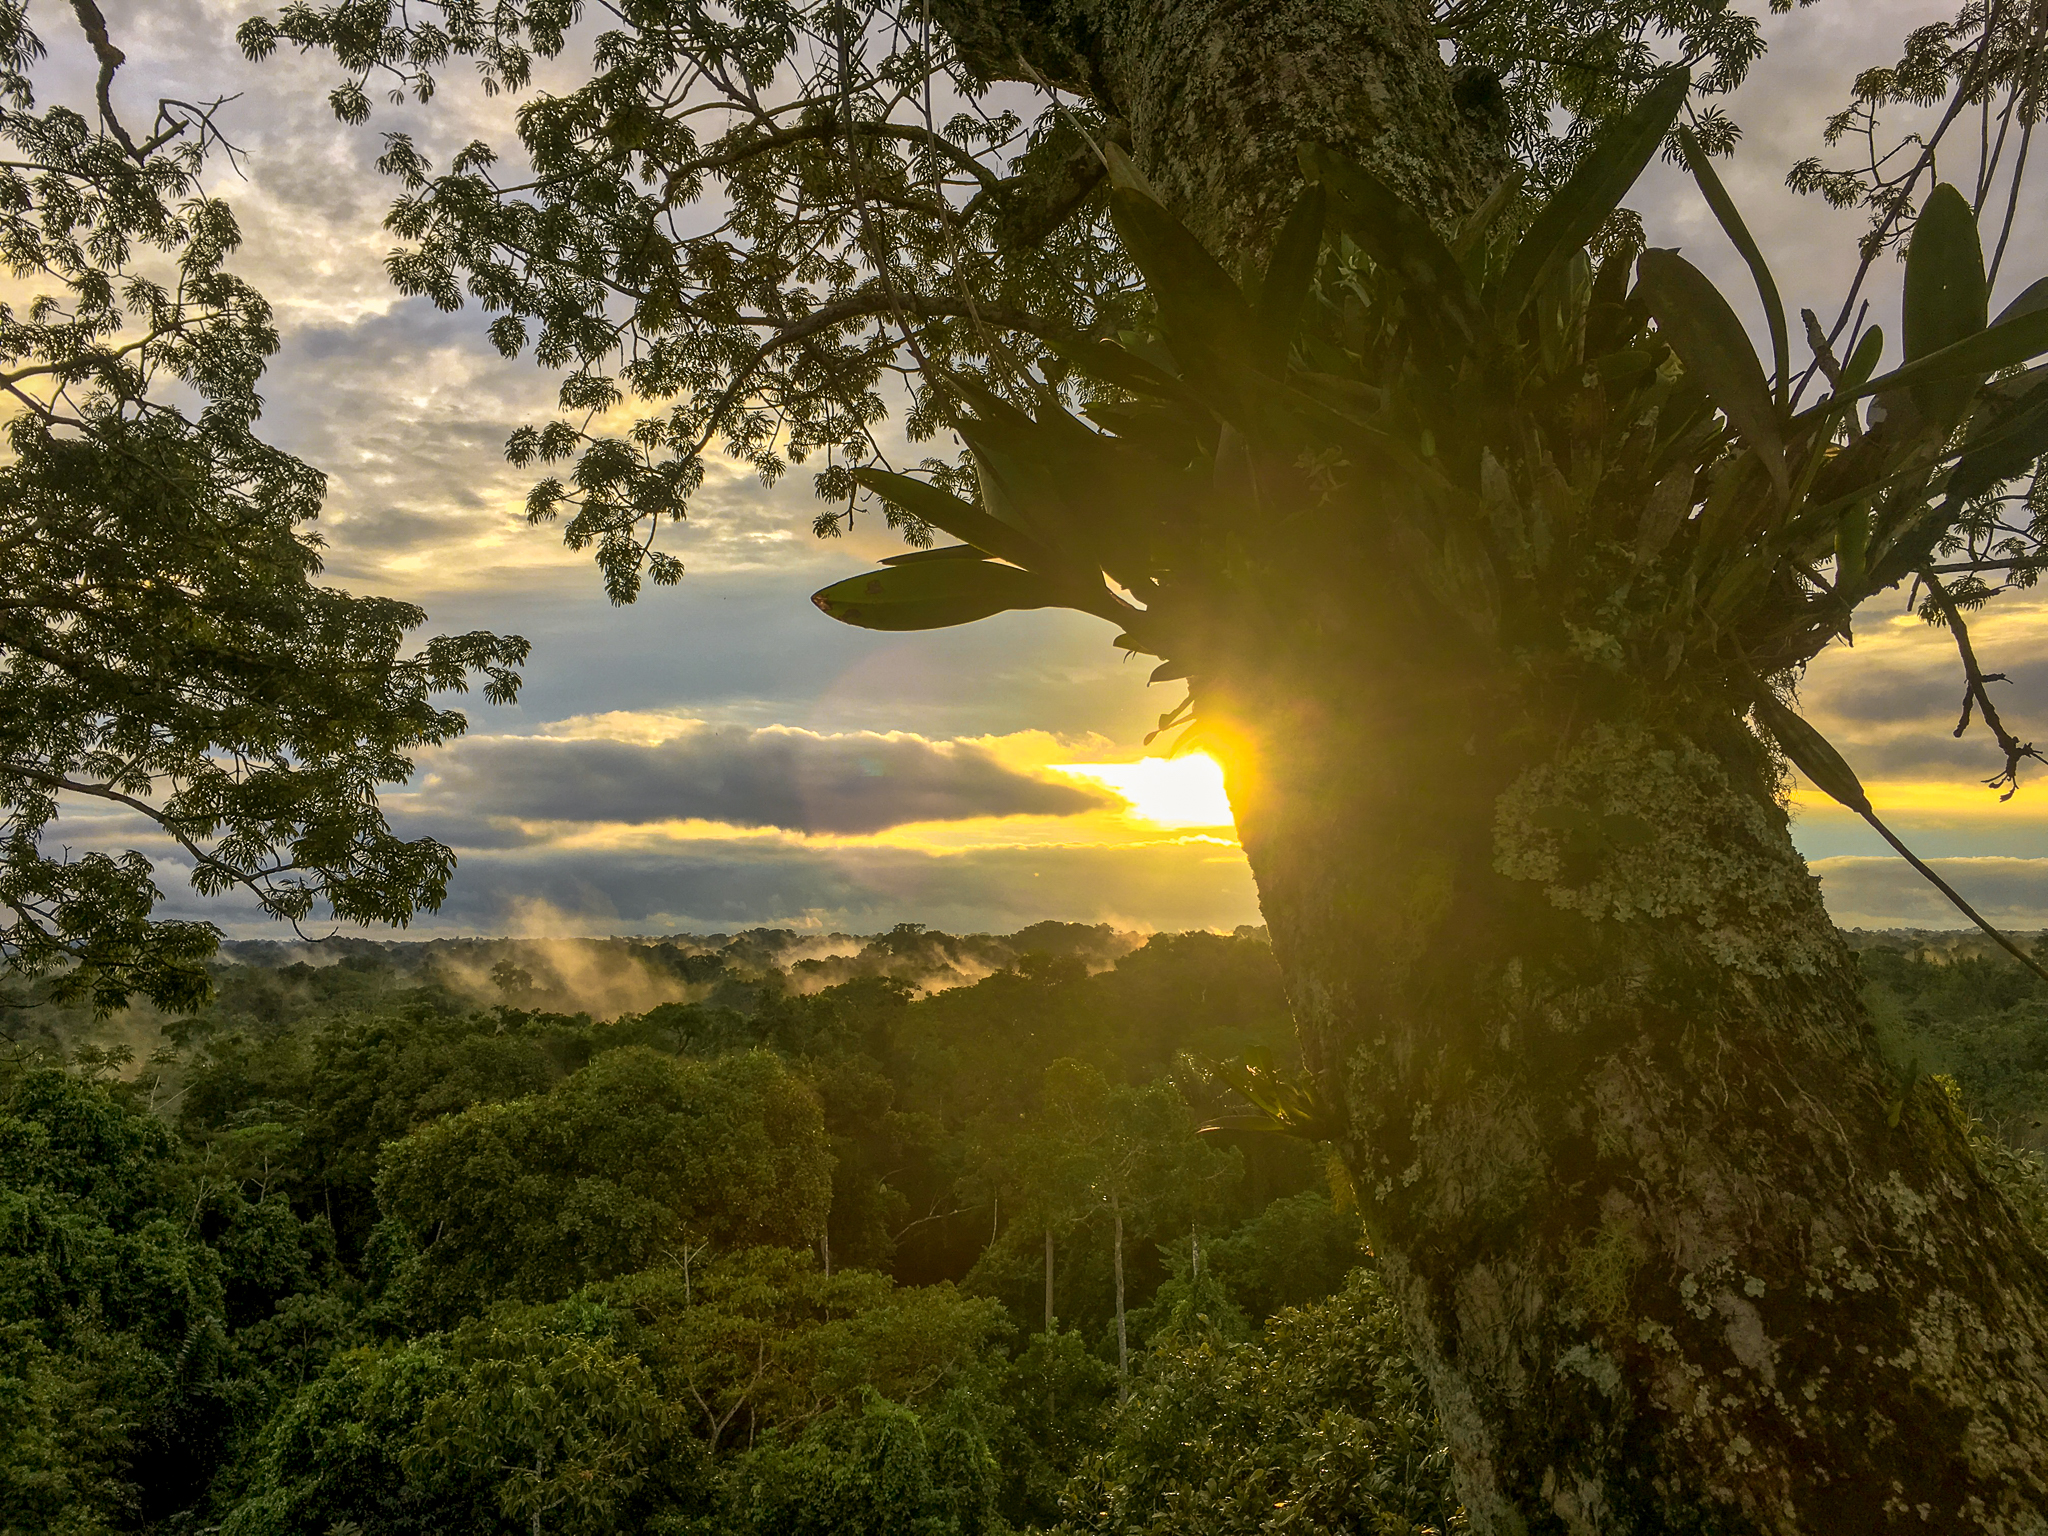 Final Sunset in the Amazon from the tree tops...